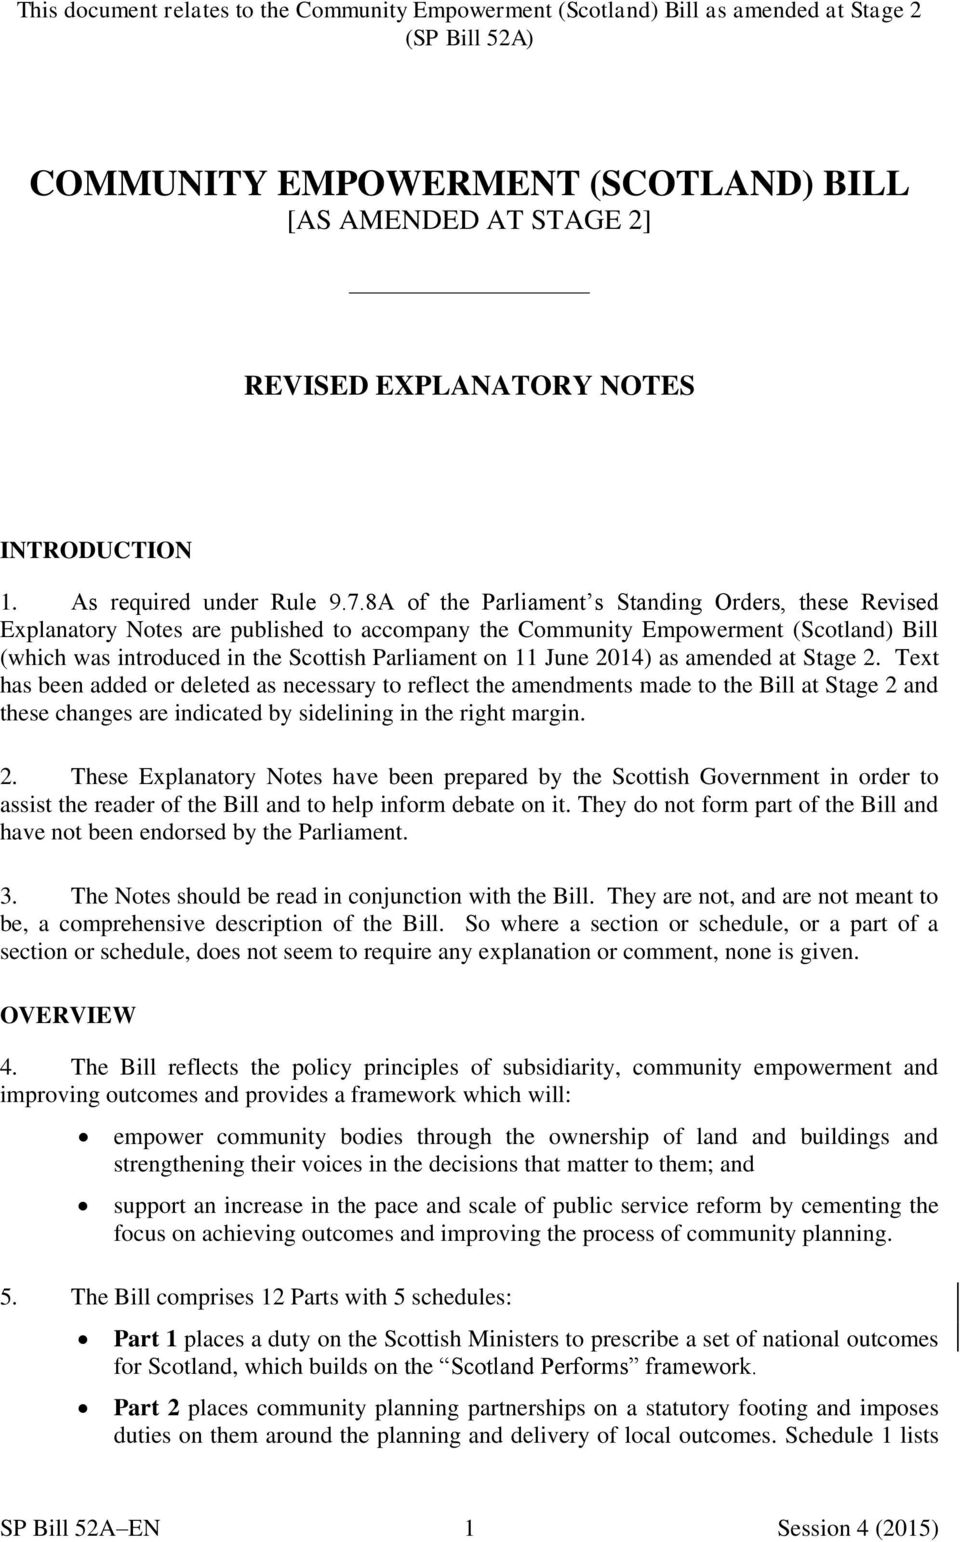 June 2014) as amended at Stage 2. Text has been added or deleted as necessary to reflect the amendments made to the Bill at Stage 2 and these changes are indicated by sidelining in the right margin.